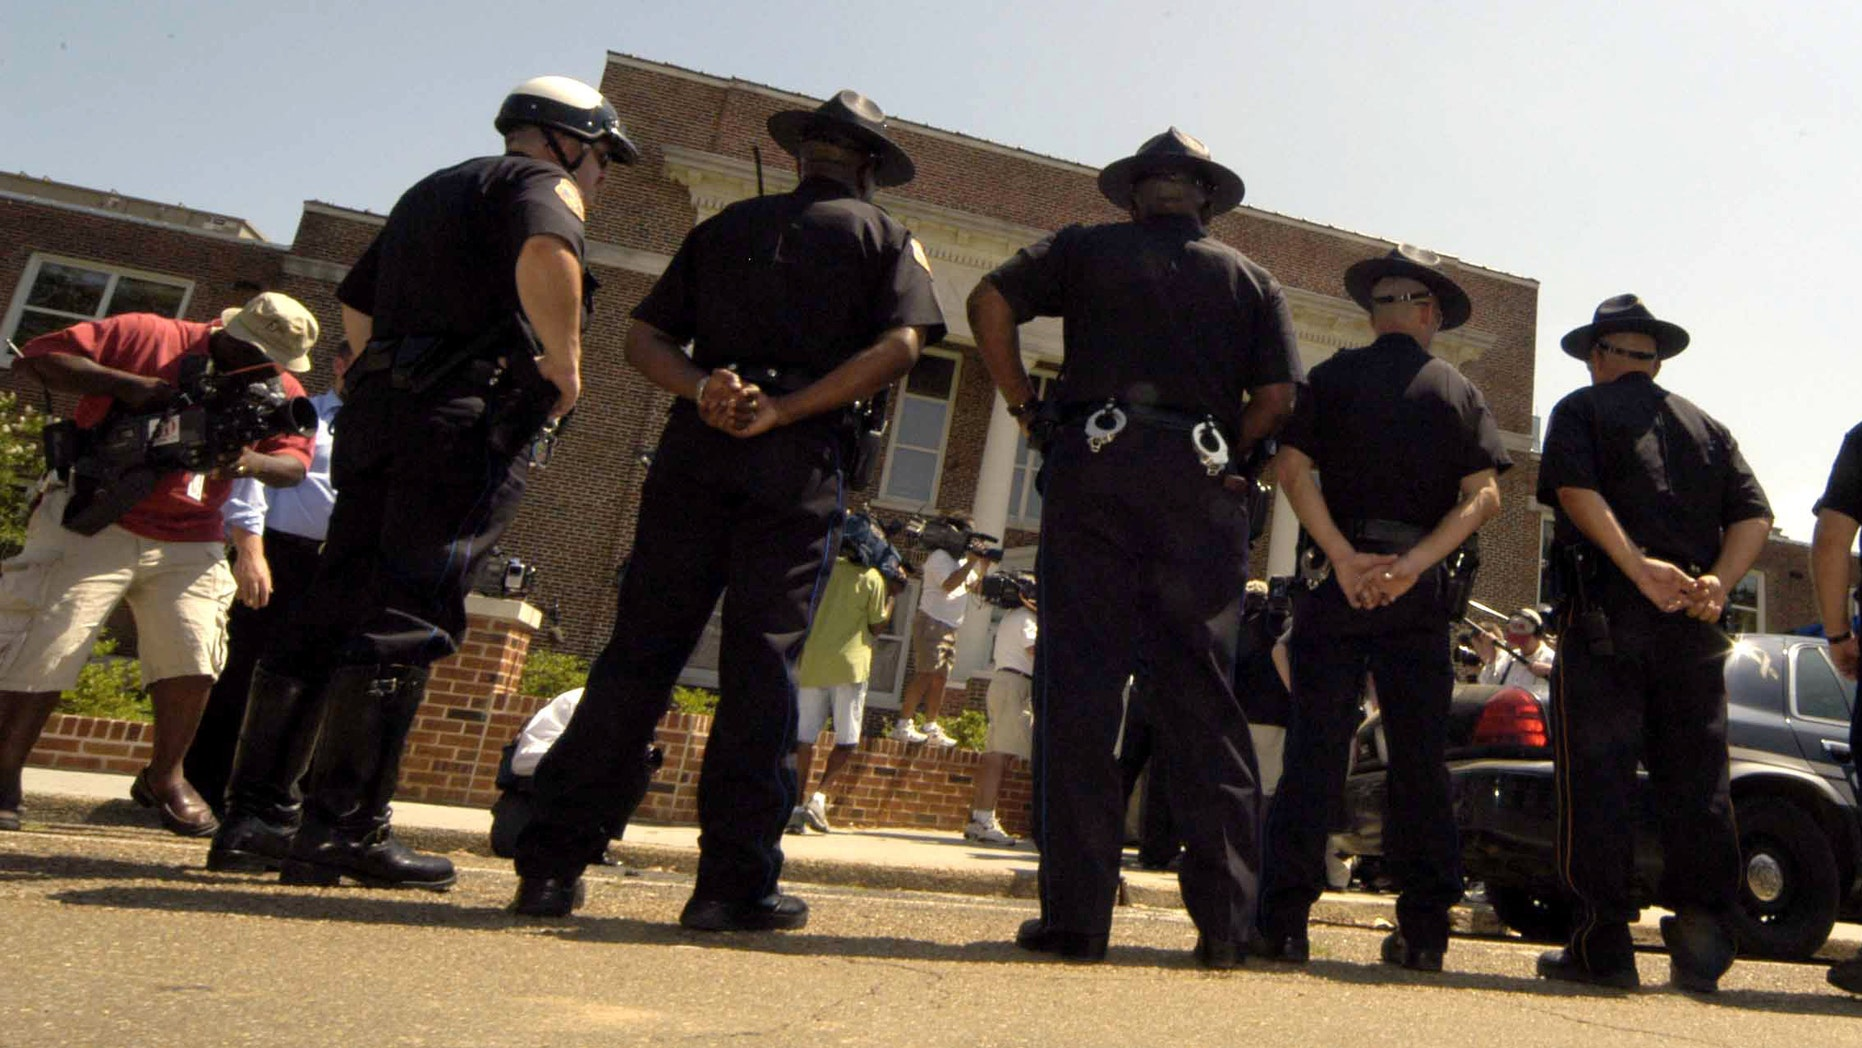 """PHILADELPHIA, MS - Philadelphia police stand guard outside the Neshoba County Courthouse during the trial of Edgar Ray Killen on June 15, 2005 in Philadelphia, Mississippi. Killen is accused in the 1964 slayings of civil rights workers James Chaney, Andrew Goodman and Michael Schwerner in a case that came to be known as """"Mississippi Burning.""""  (Photo by Marianne Todd/Getty Images)"""